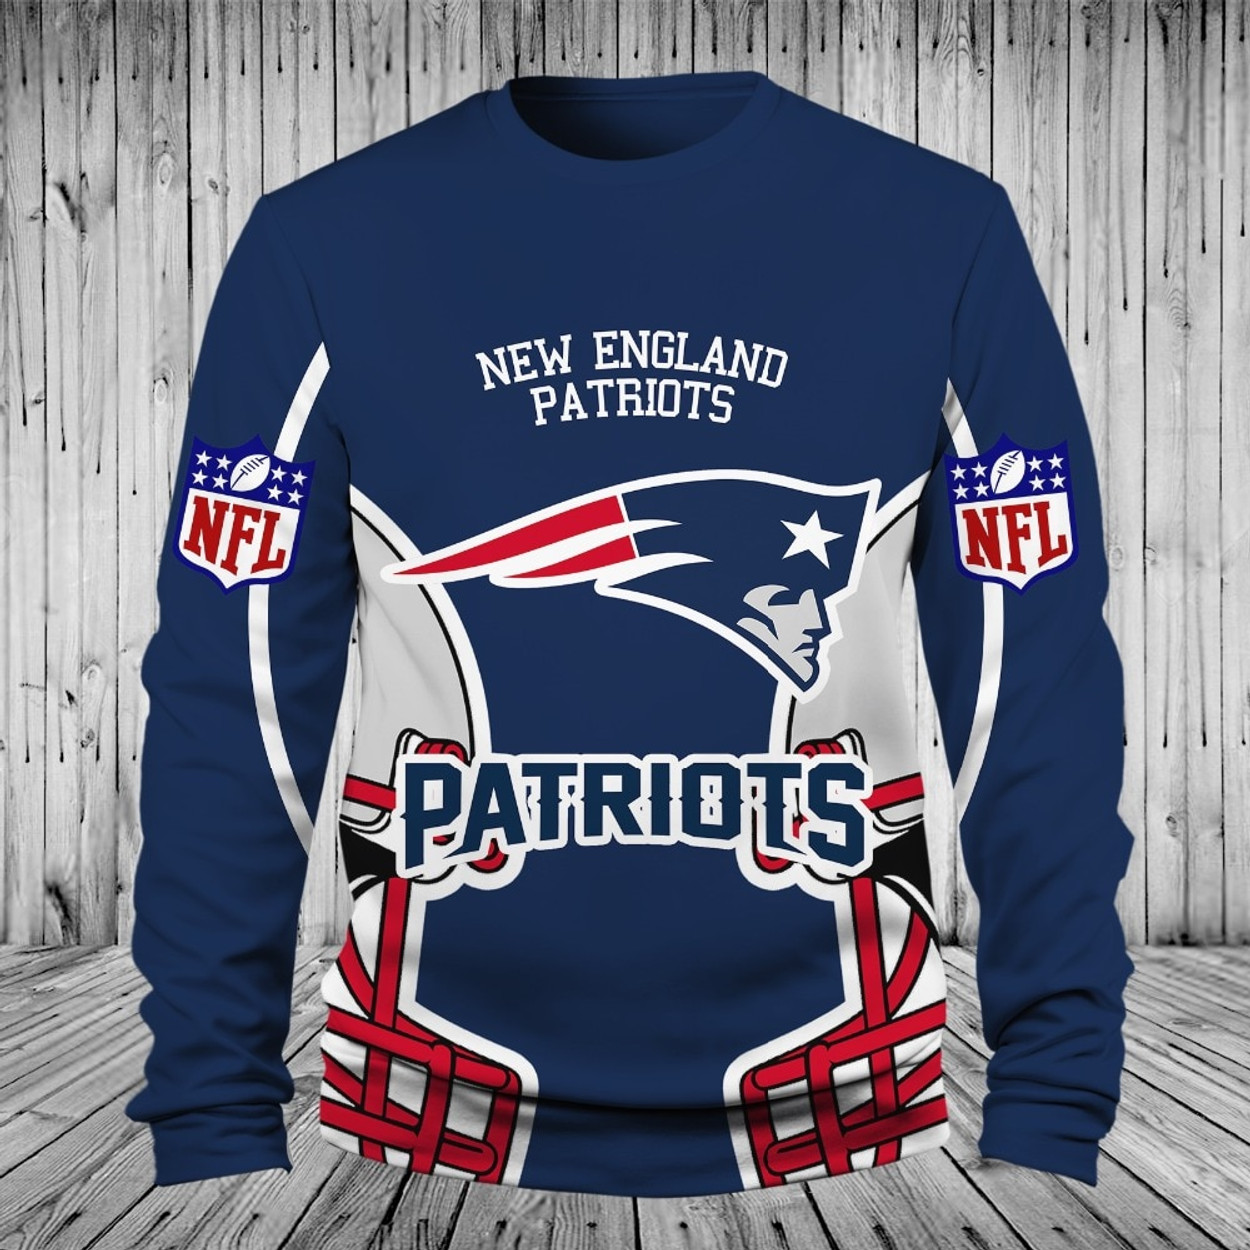 bbe234a62   (OFFICIALLY-LICENSED-N.F.L.NEW-ENGLAND-PATRIOTS-TEAM-LONG-SLEEVE-TEES NICE -CUSTOM-3D-GRAPHIC-PRINTED-DOUBLE-SIDED-ALL-OVER-GRAPHIC-PATRIOTS-LOGOS ...